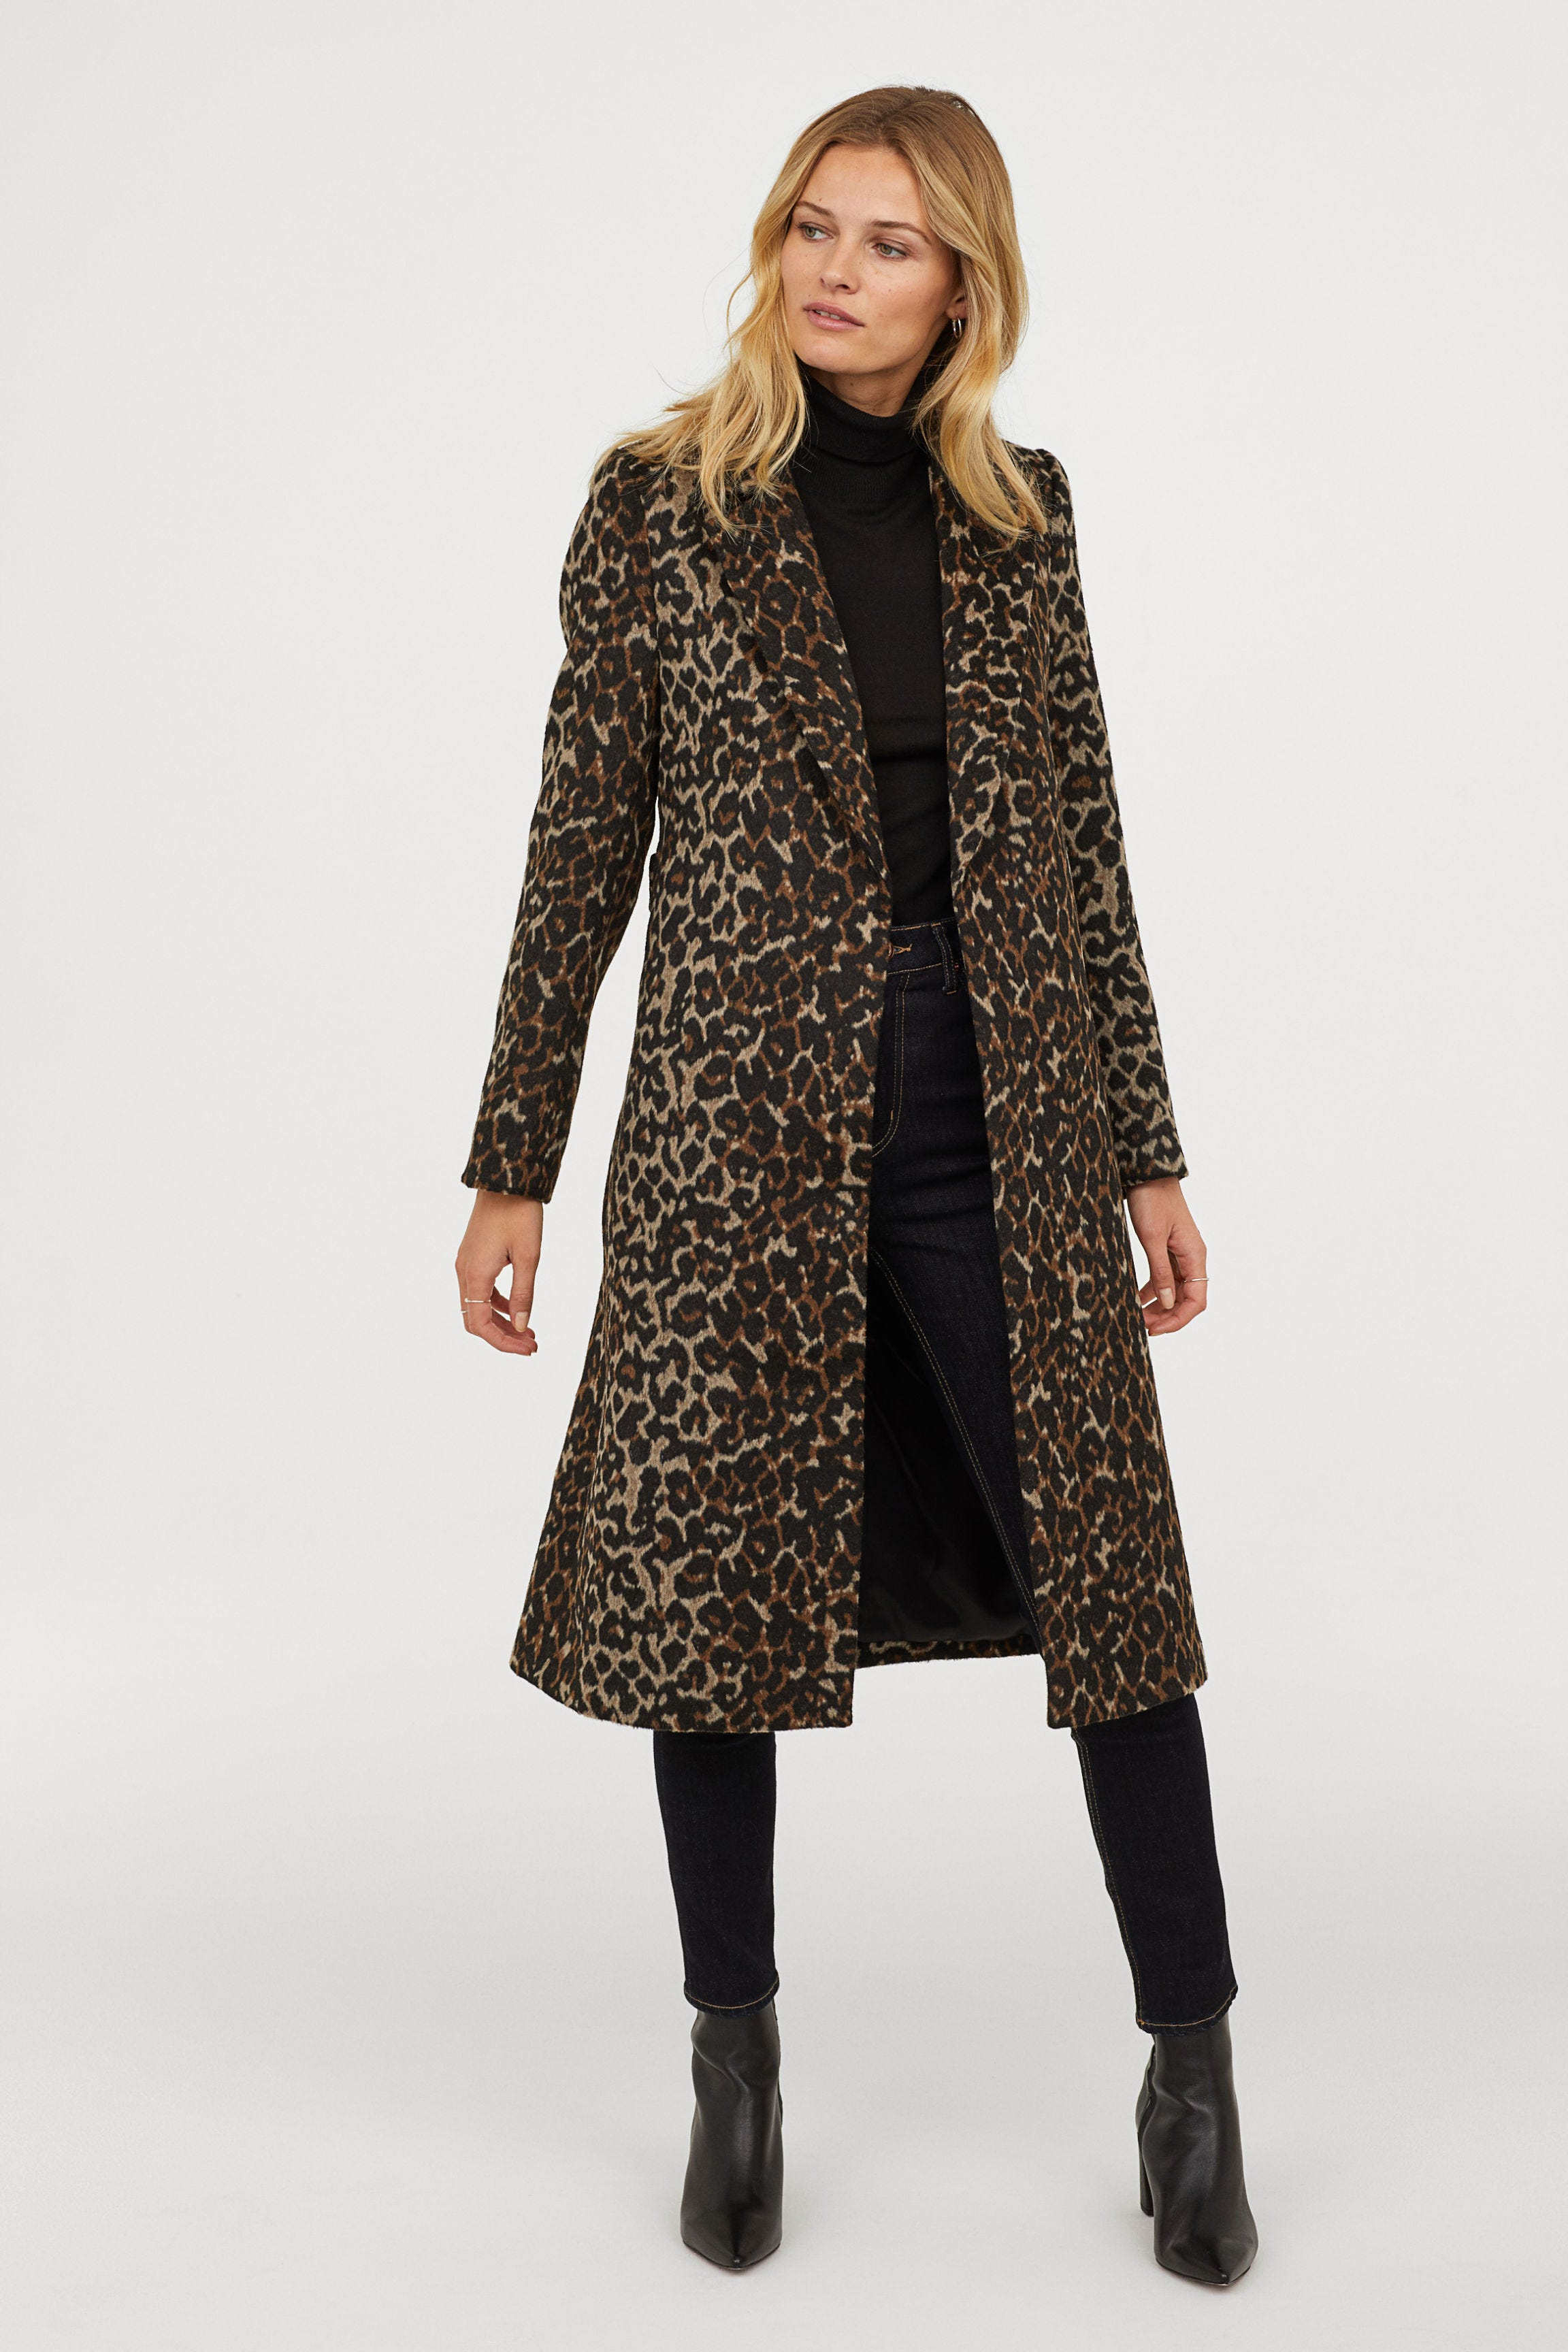 2fa685bf Best Leopard Print Coats To Keep You Warm Winter 2018